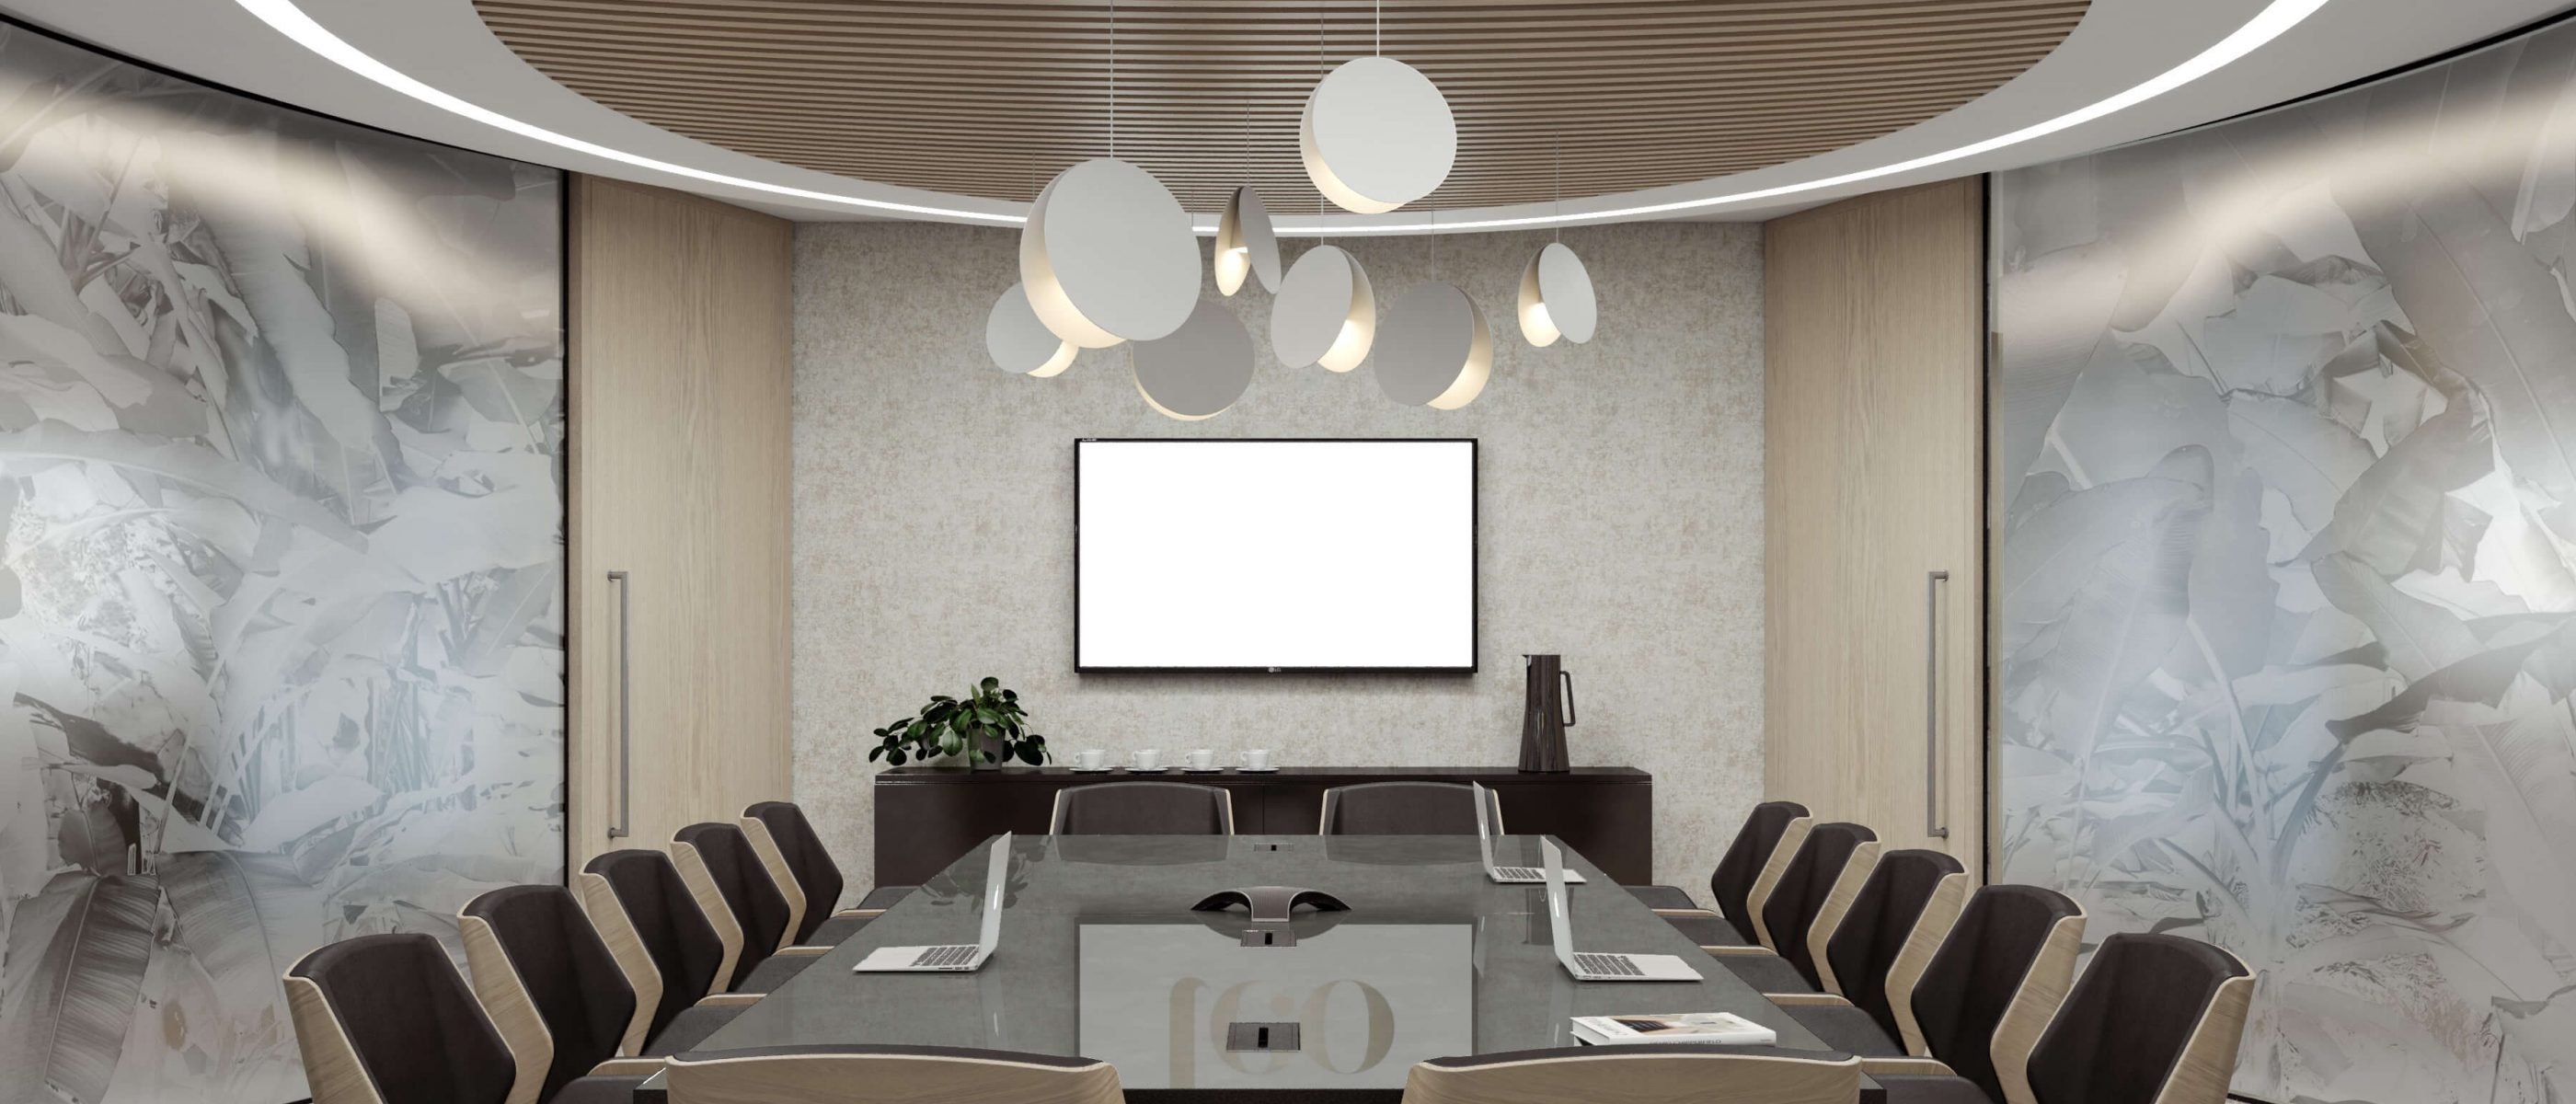 Park Street Meeting Room